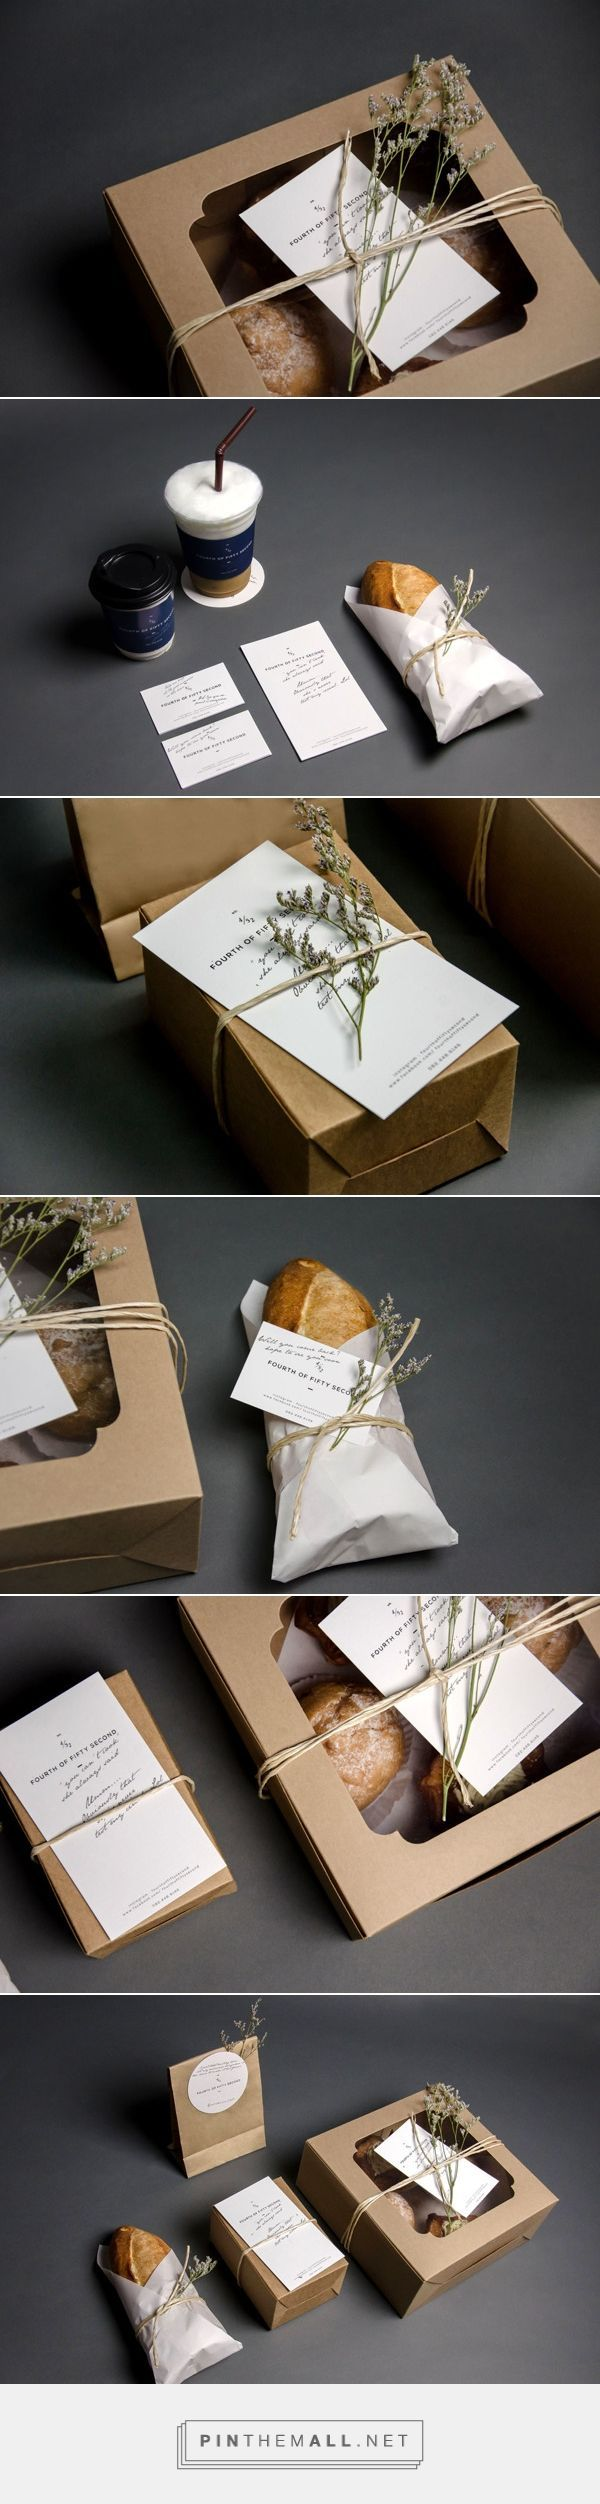 package branding design with leaf and craft paper